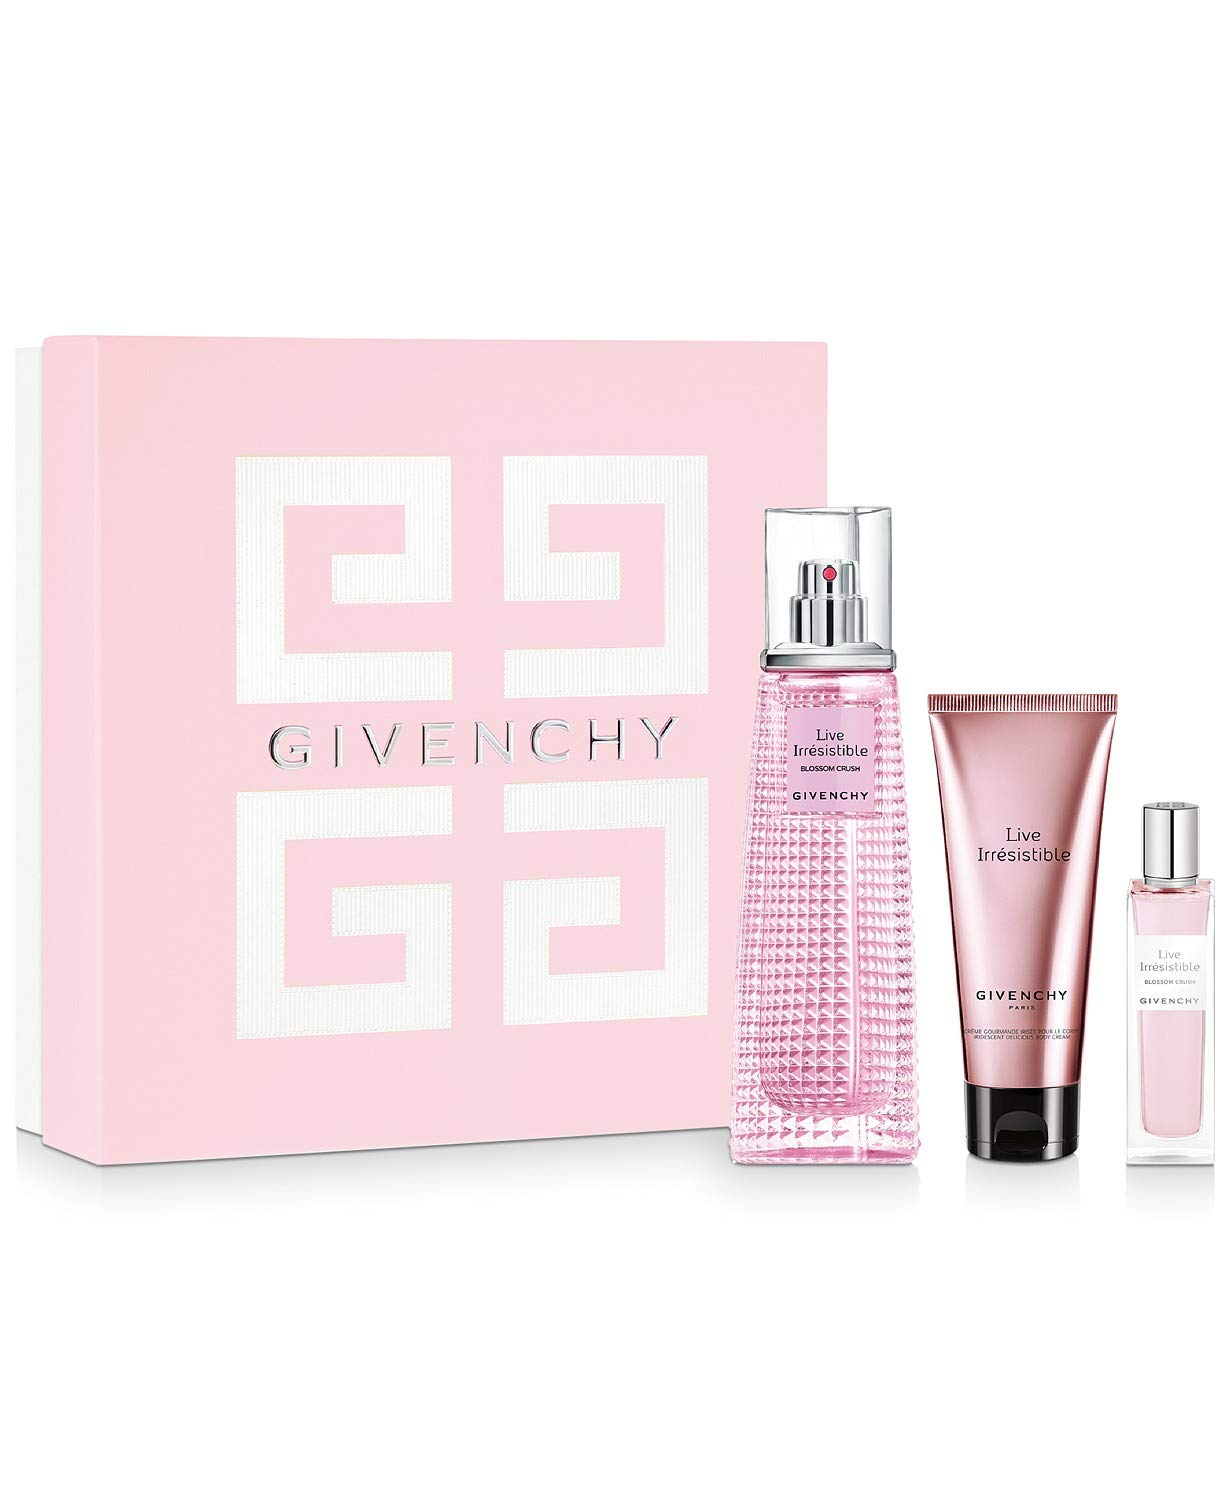 Givenchy Live Irresistible for Women 3 Ea 2.5 5% OFF Set Oz Gift Piece Popular products